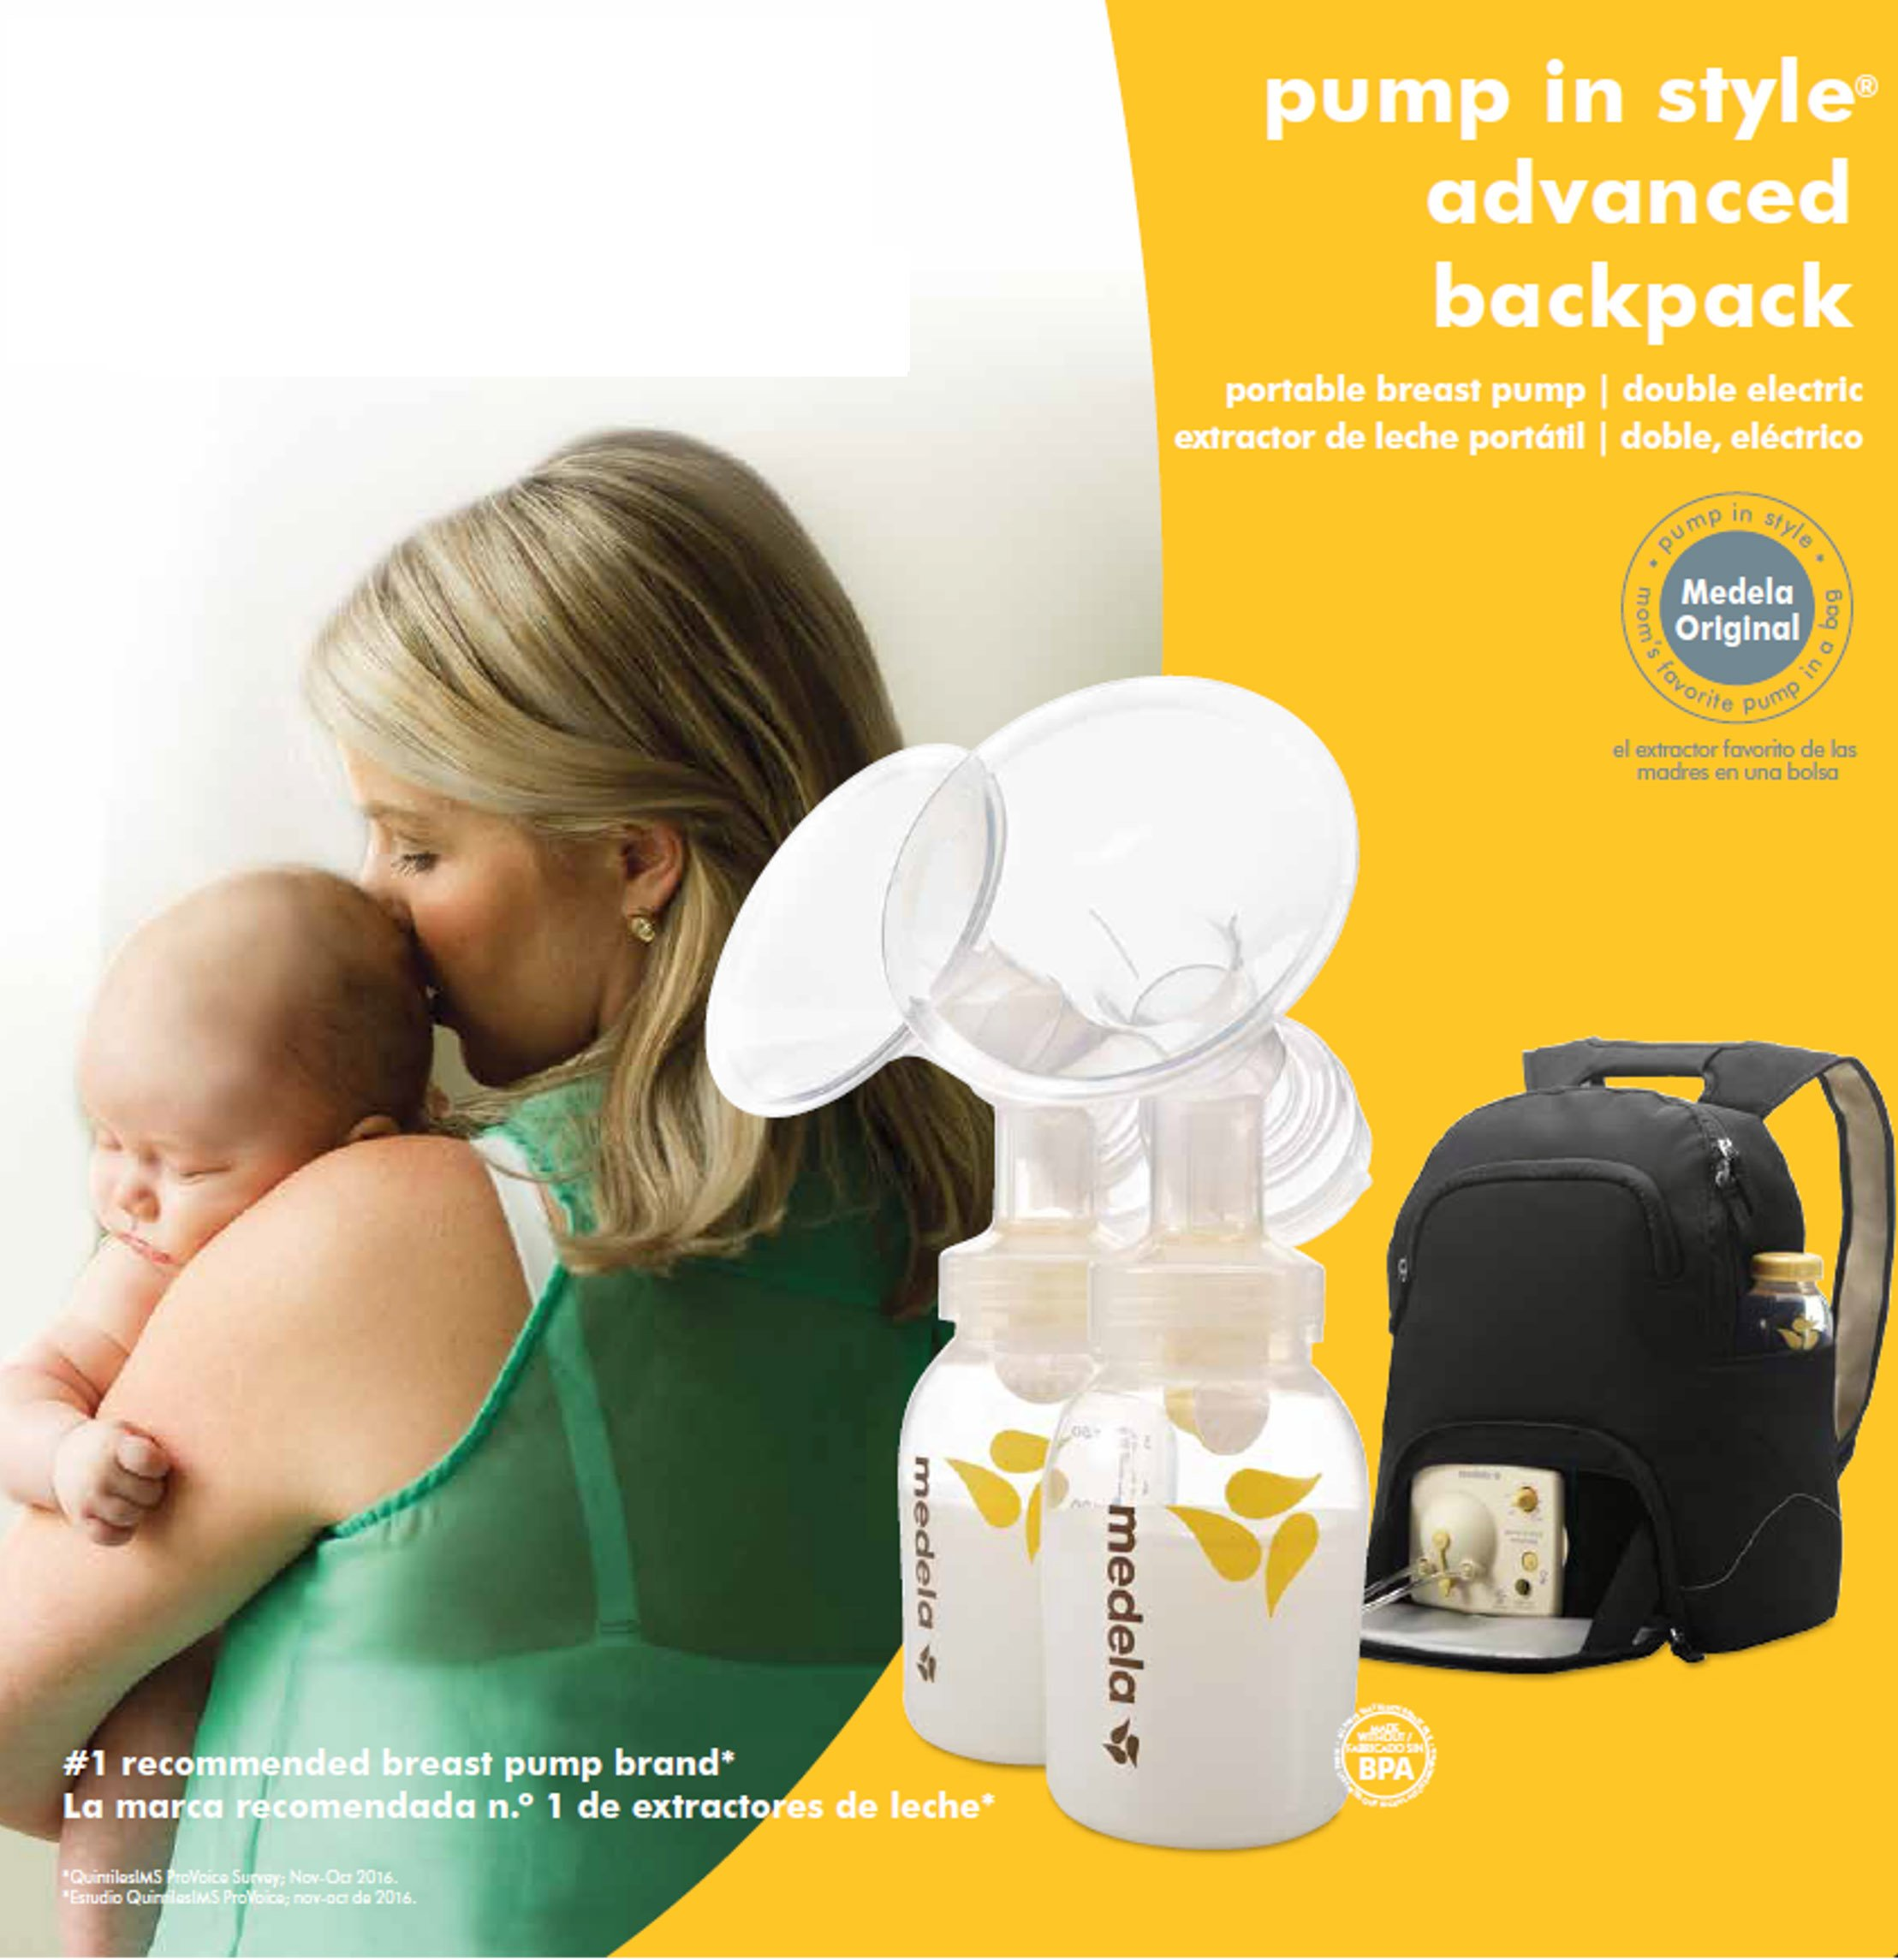 Medela Pump In Style Advanced Breast Pump Backpack The Fnu Company